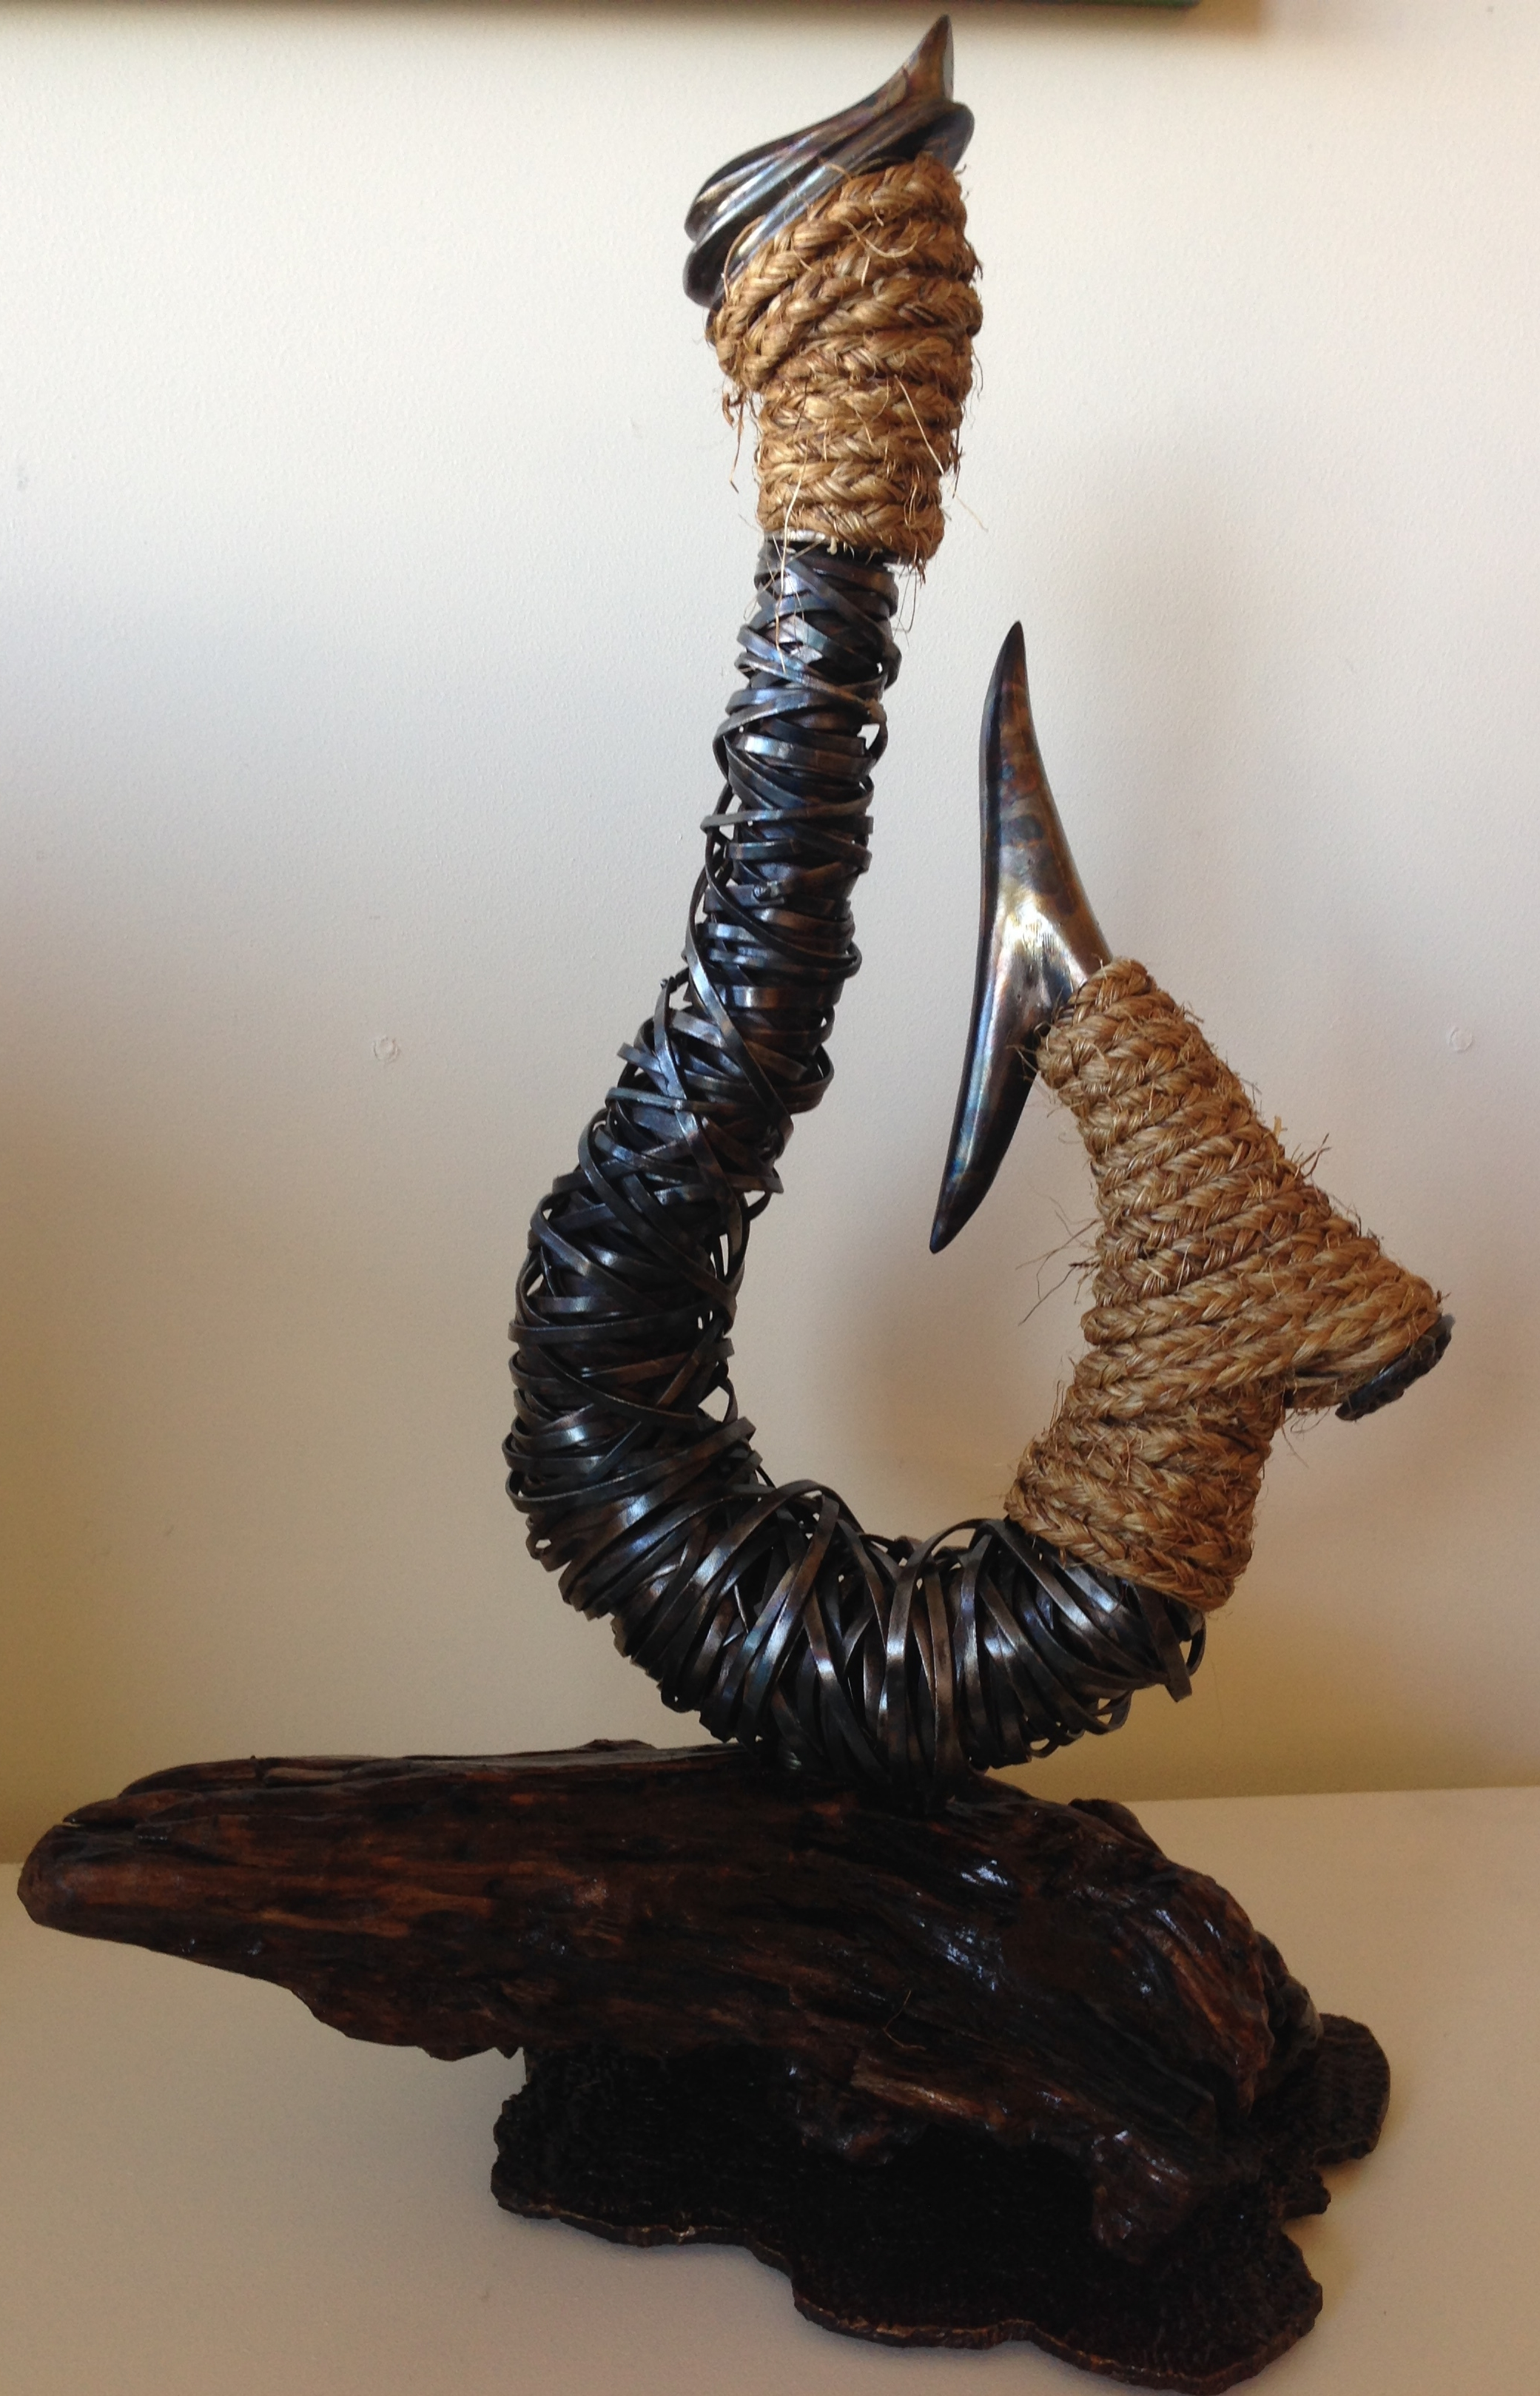 Hook. Steel, copper, wood and rope. By Mark Larsen.